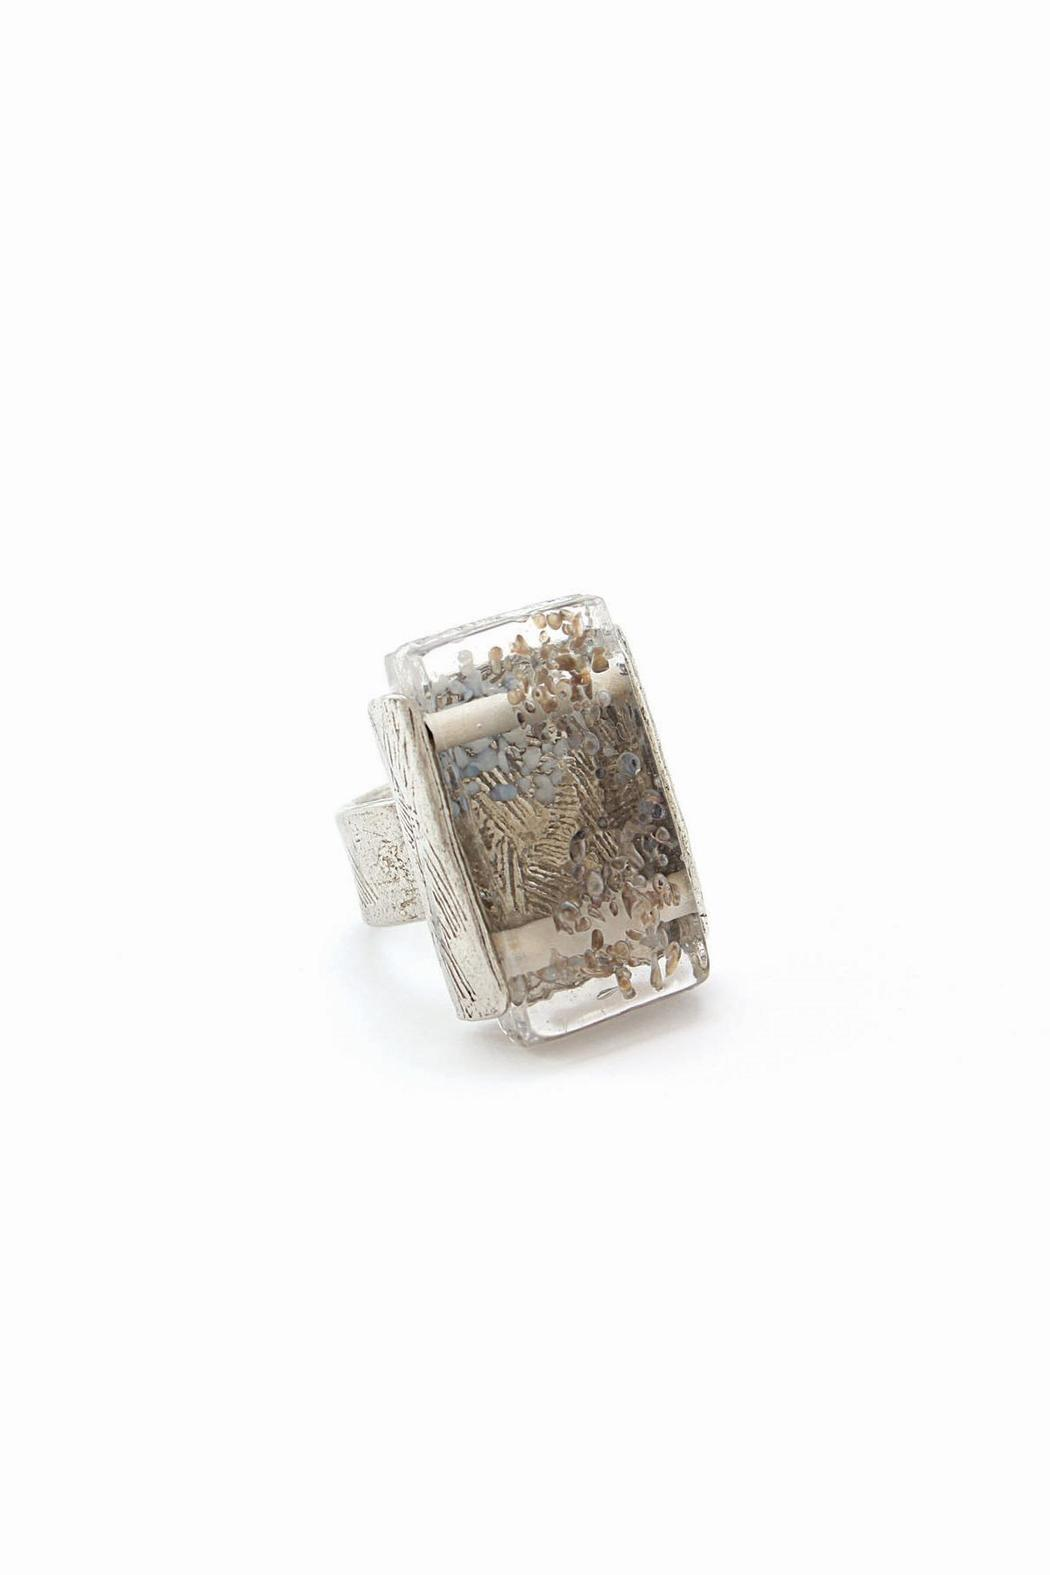 Anne Marie Chagnon Justine Glass Ring - Main Image